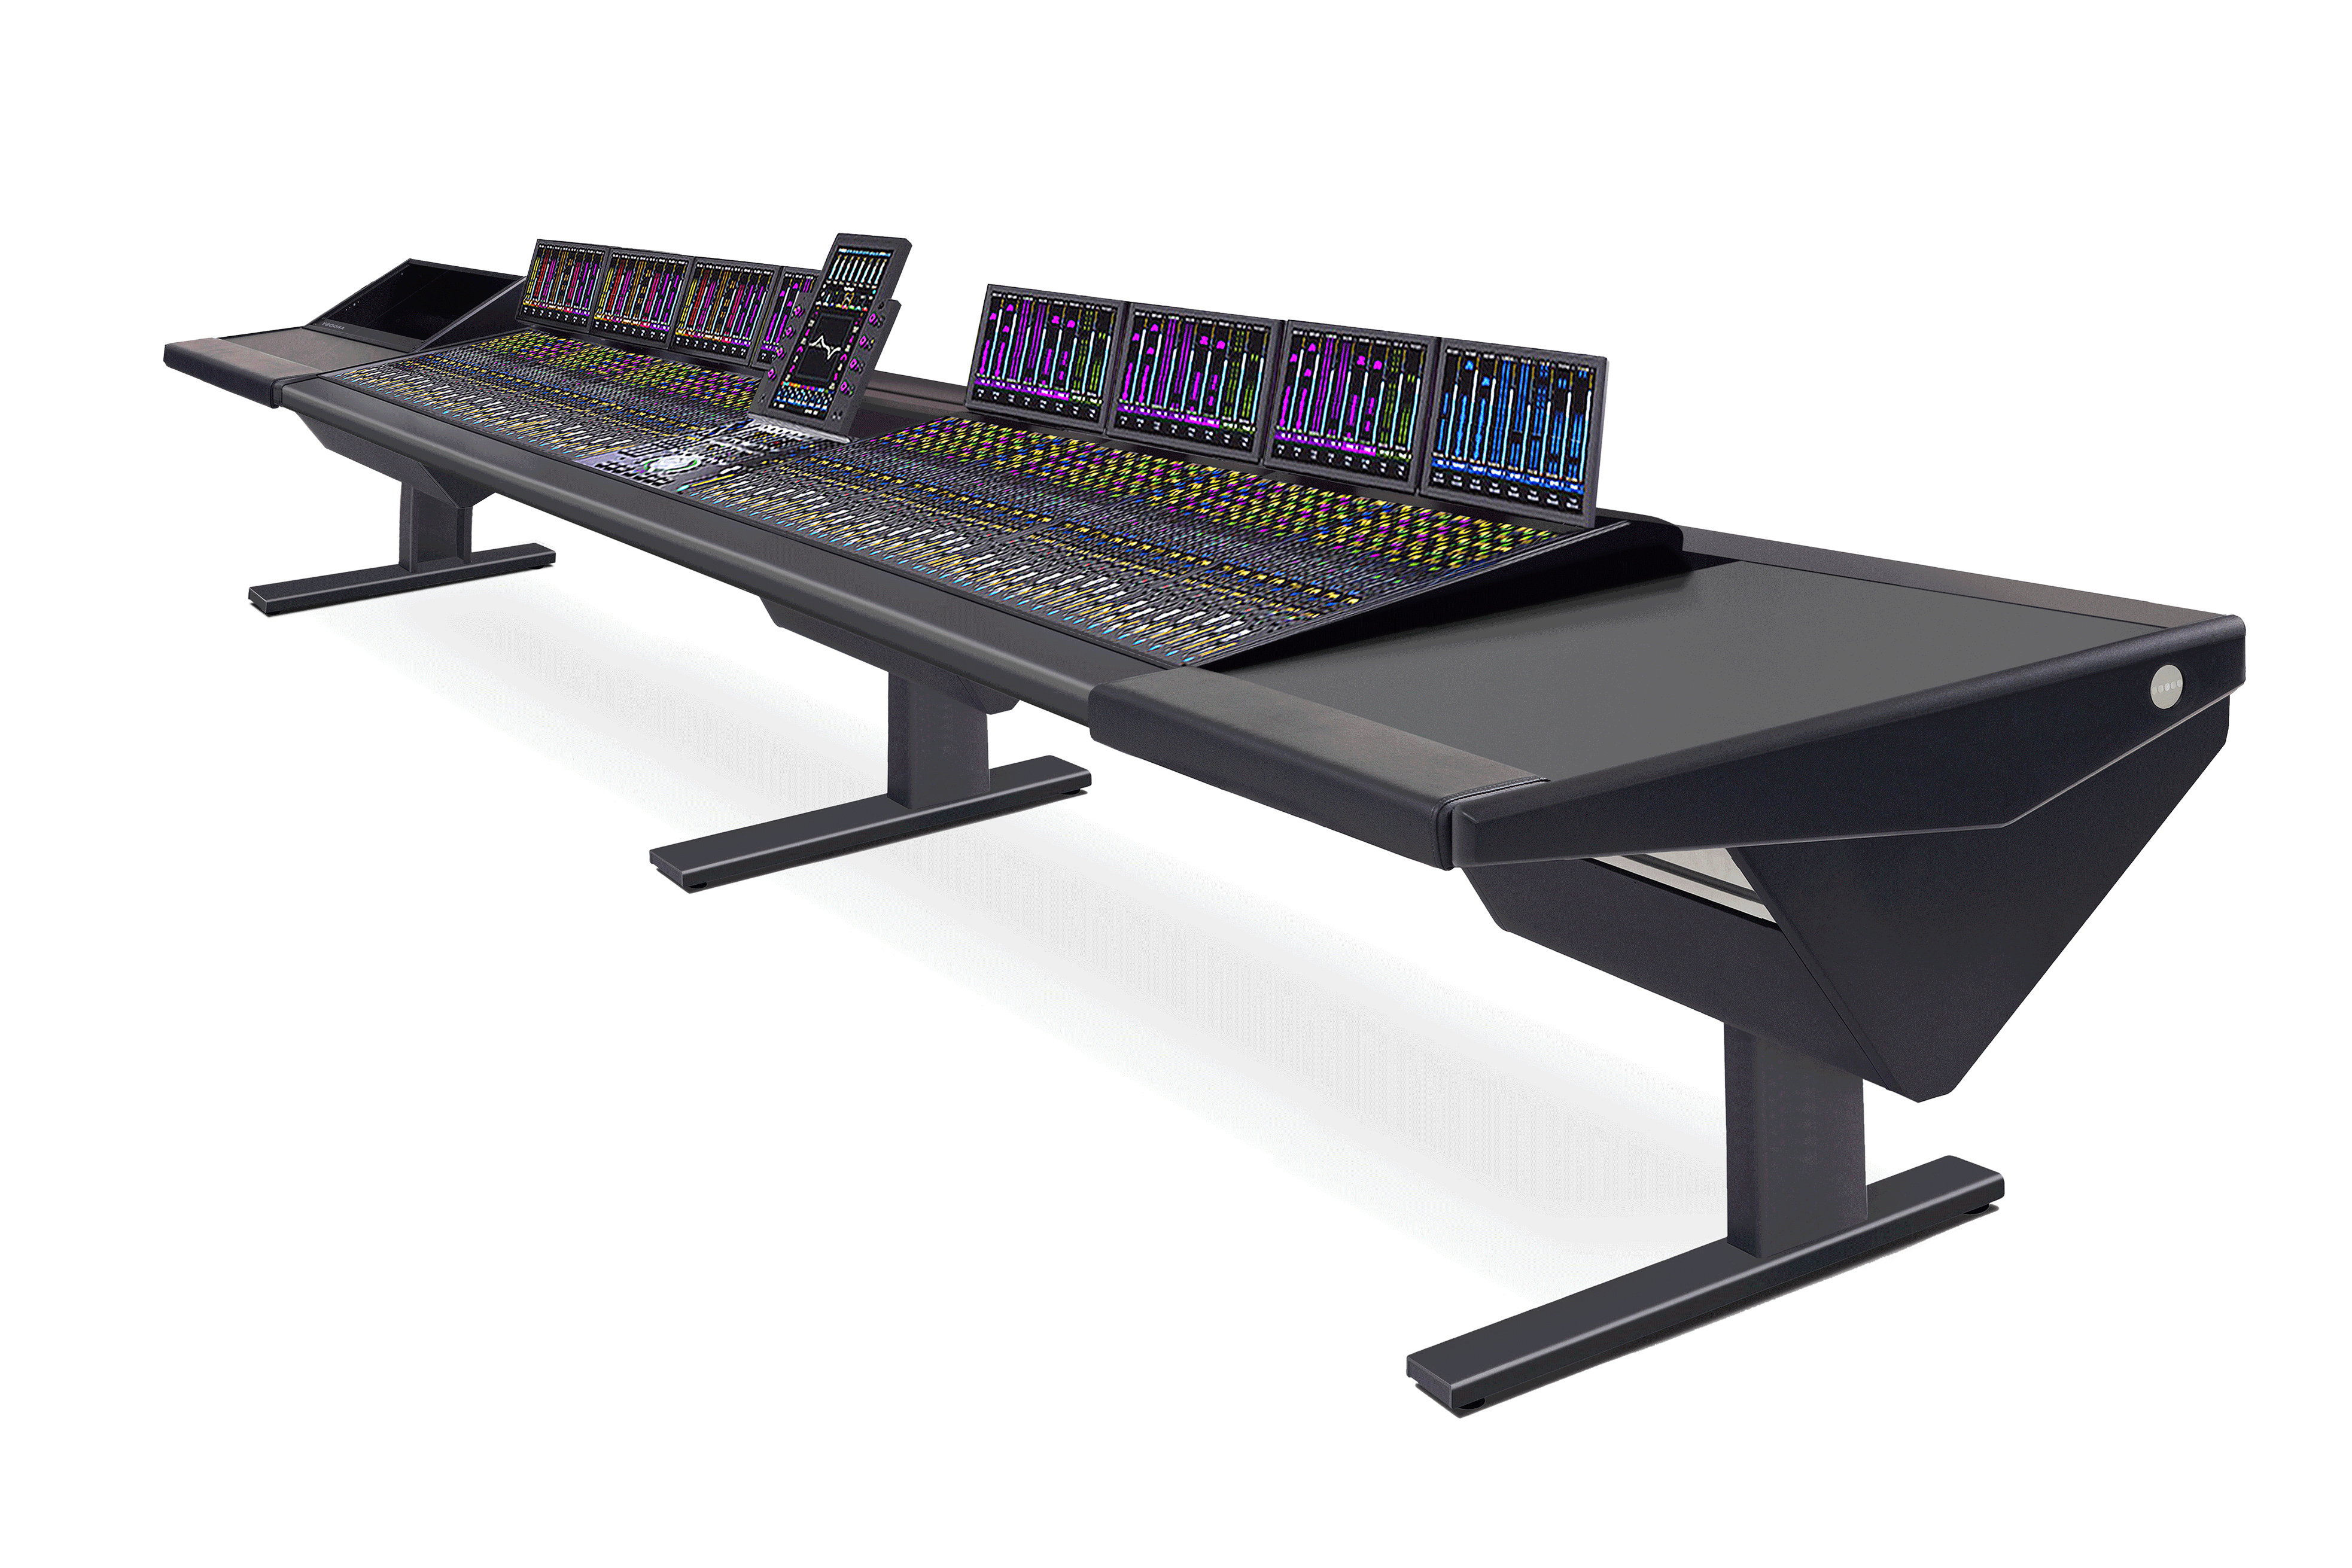 64 Fader System with Rack (L) and Desk (R)